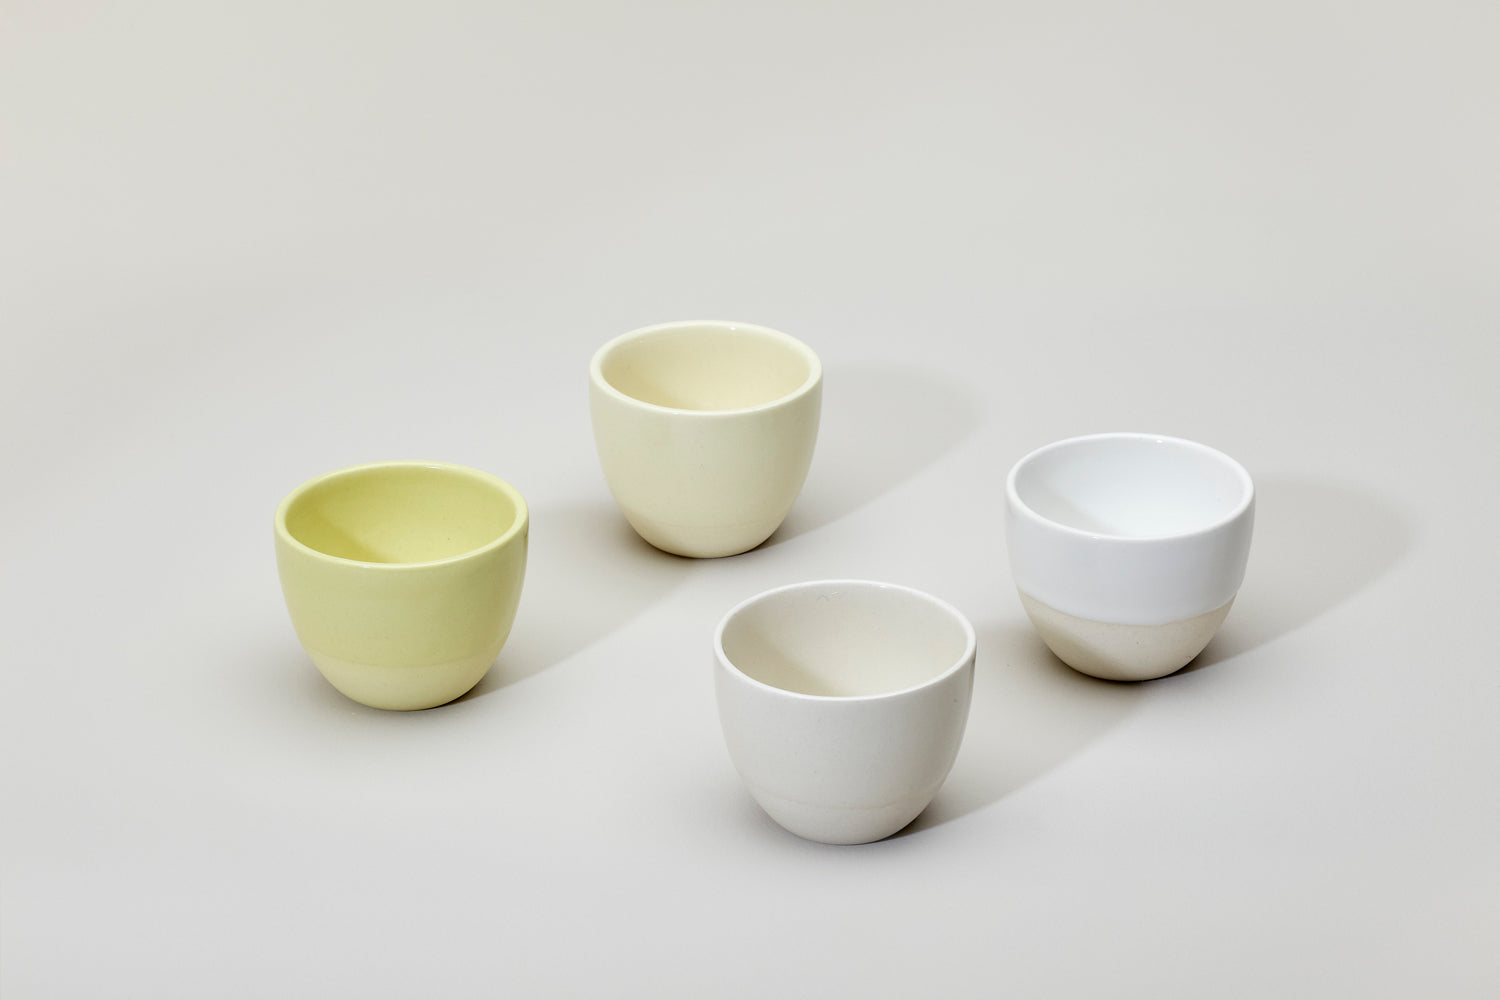 Simple cups, yellow set